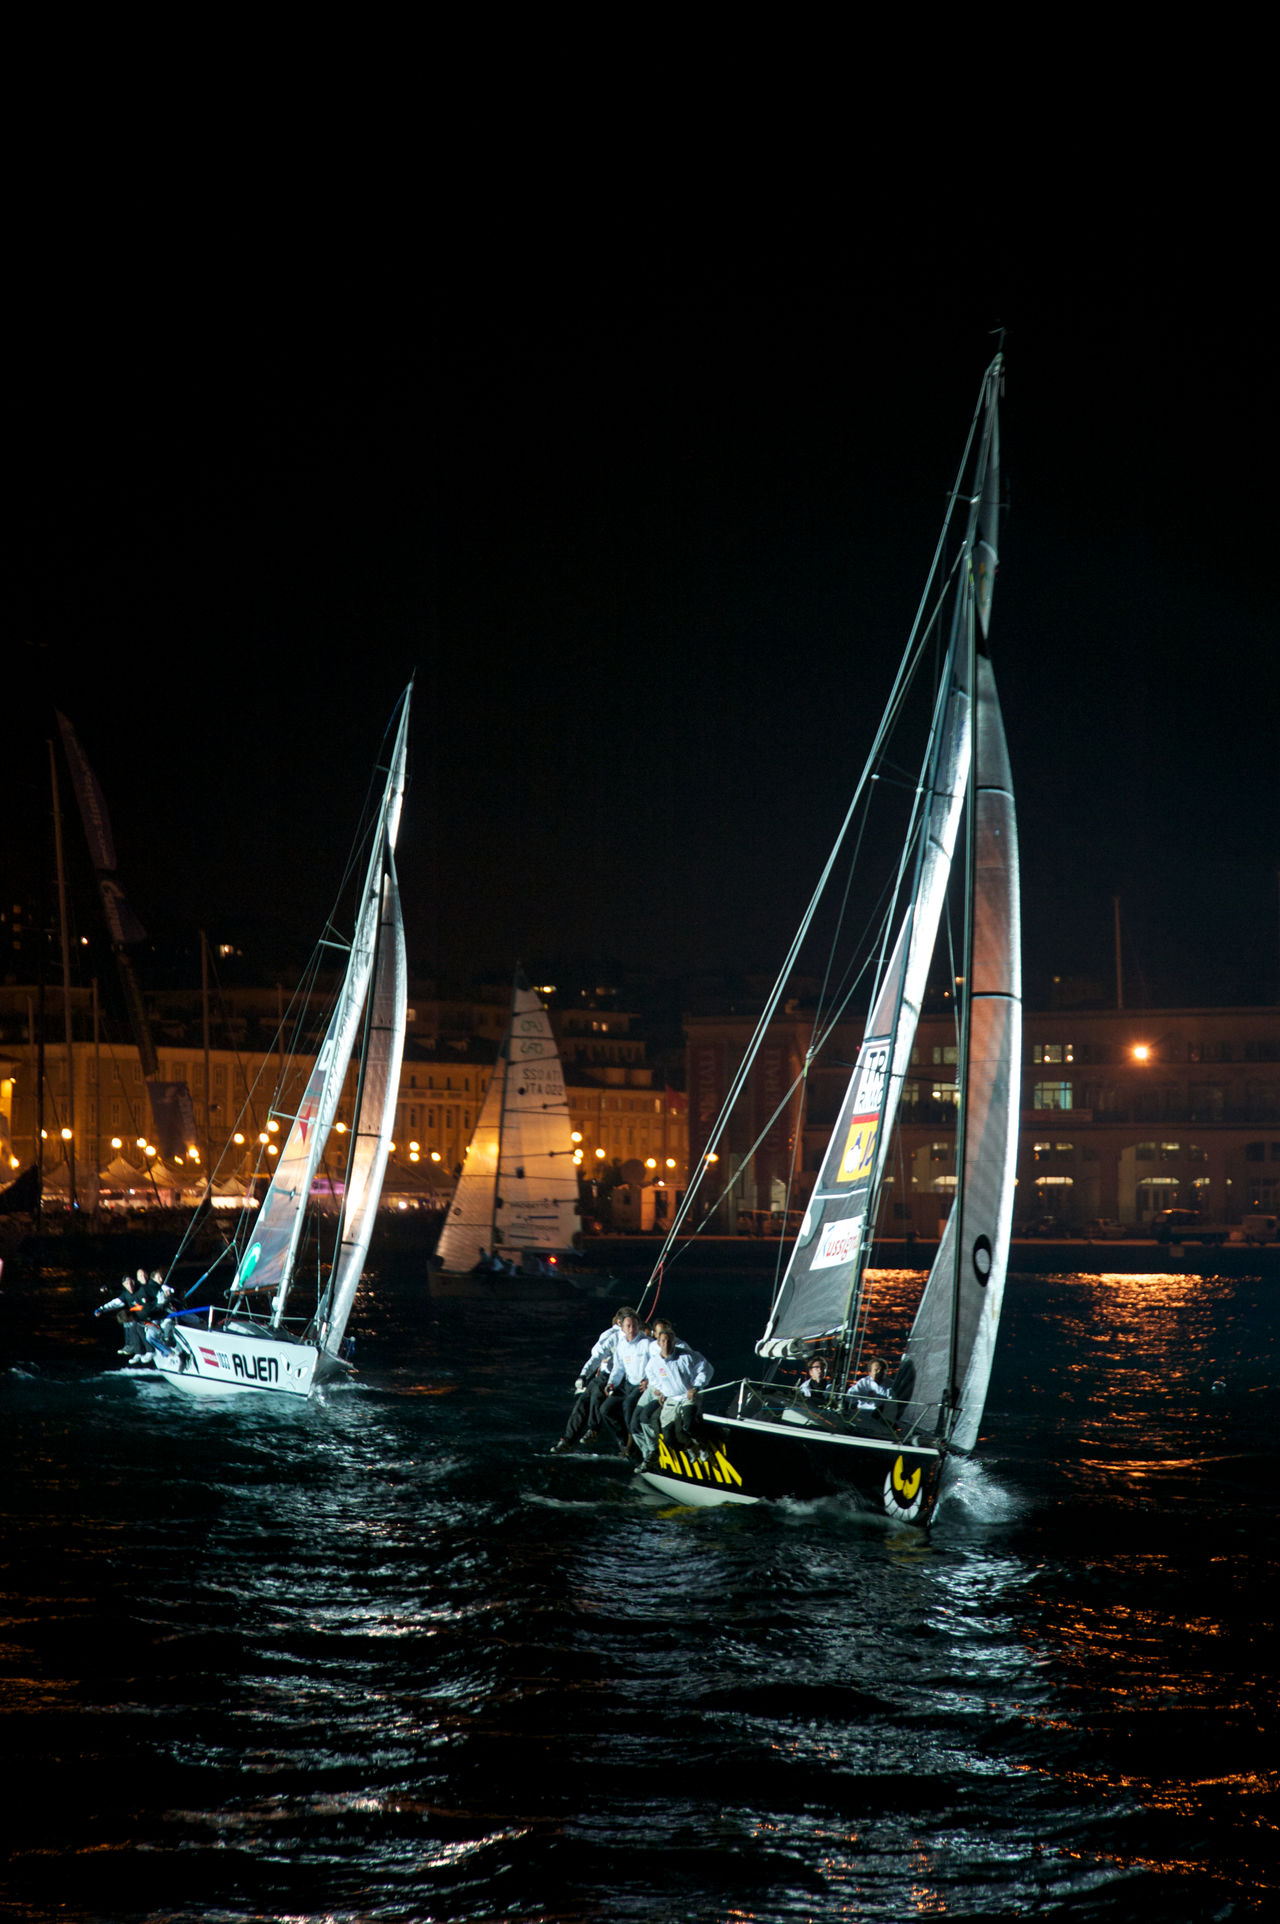 sail boats during the regata Barcolana at night Barcolana 2010 Competition Competitive Sport Nautical Vessel Night Outdoors Regatta Sailboat Sailing Sailing Ship Sailor Sea Sports Race Trieste TriesteSocial Water